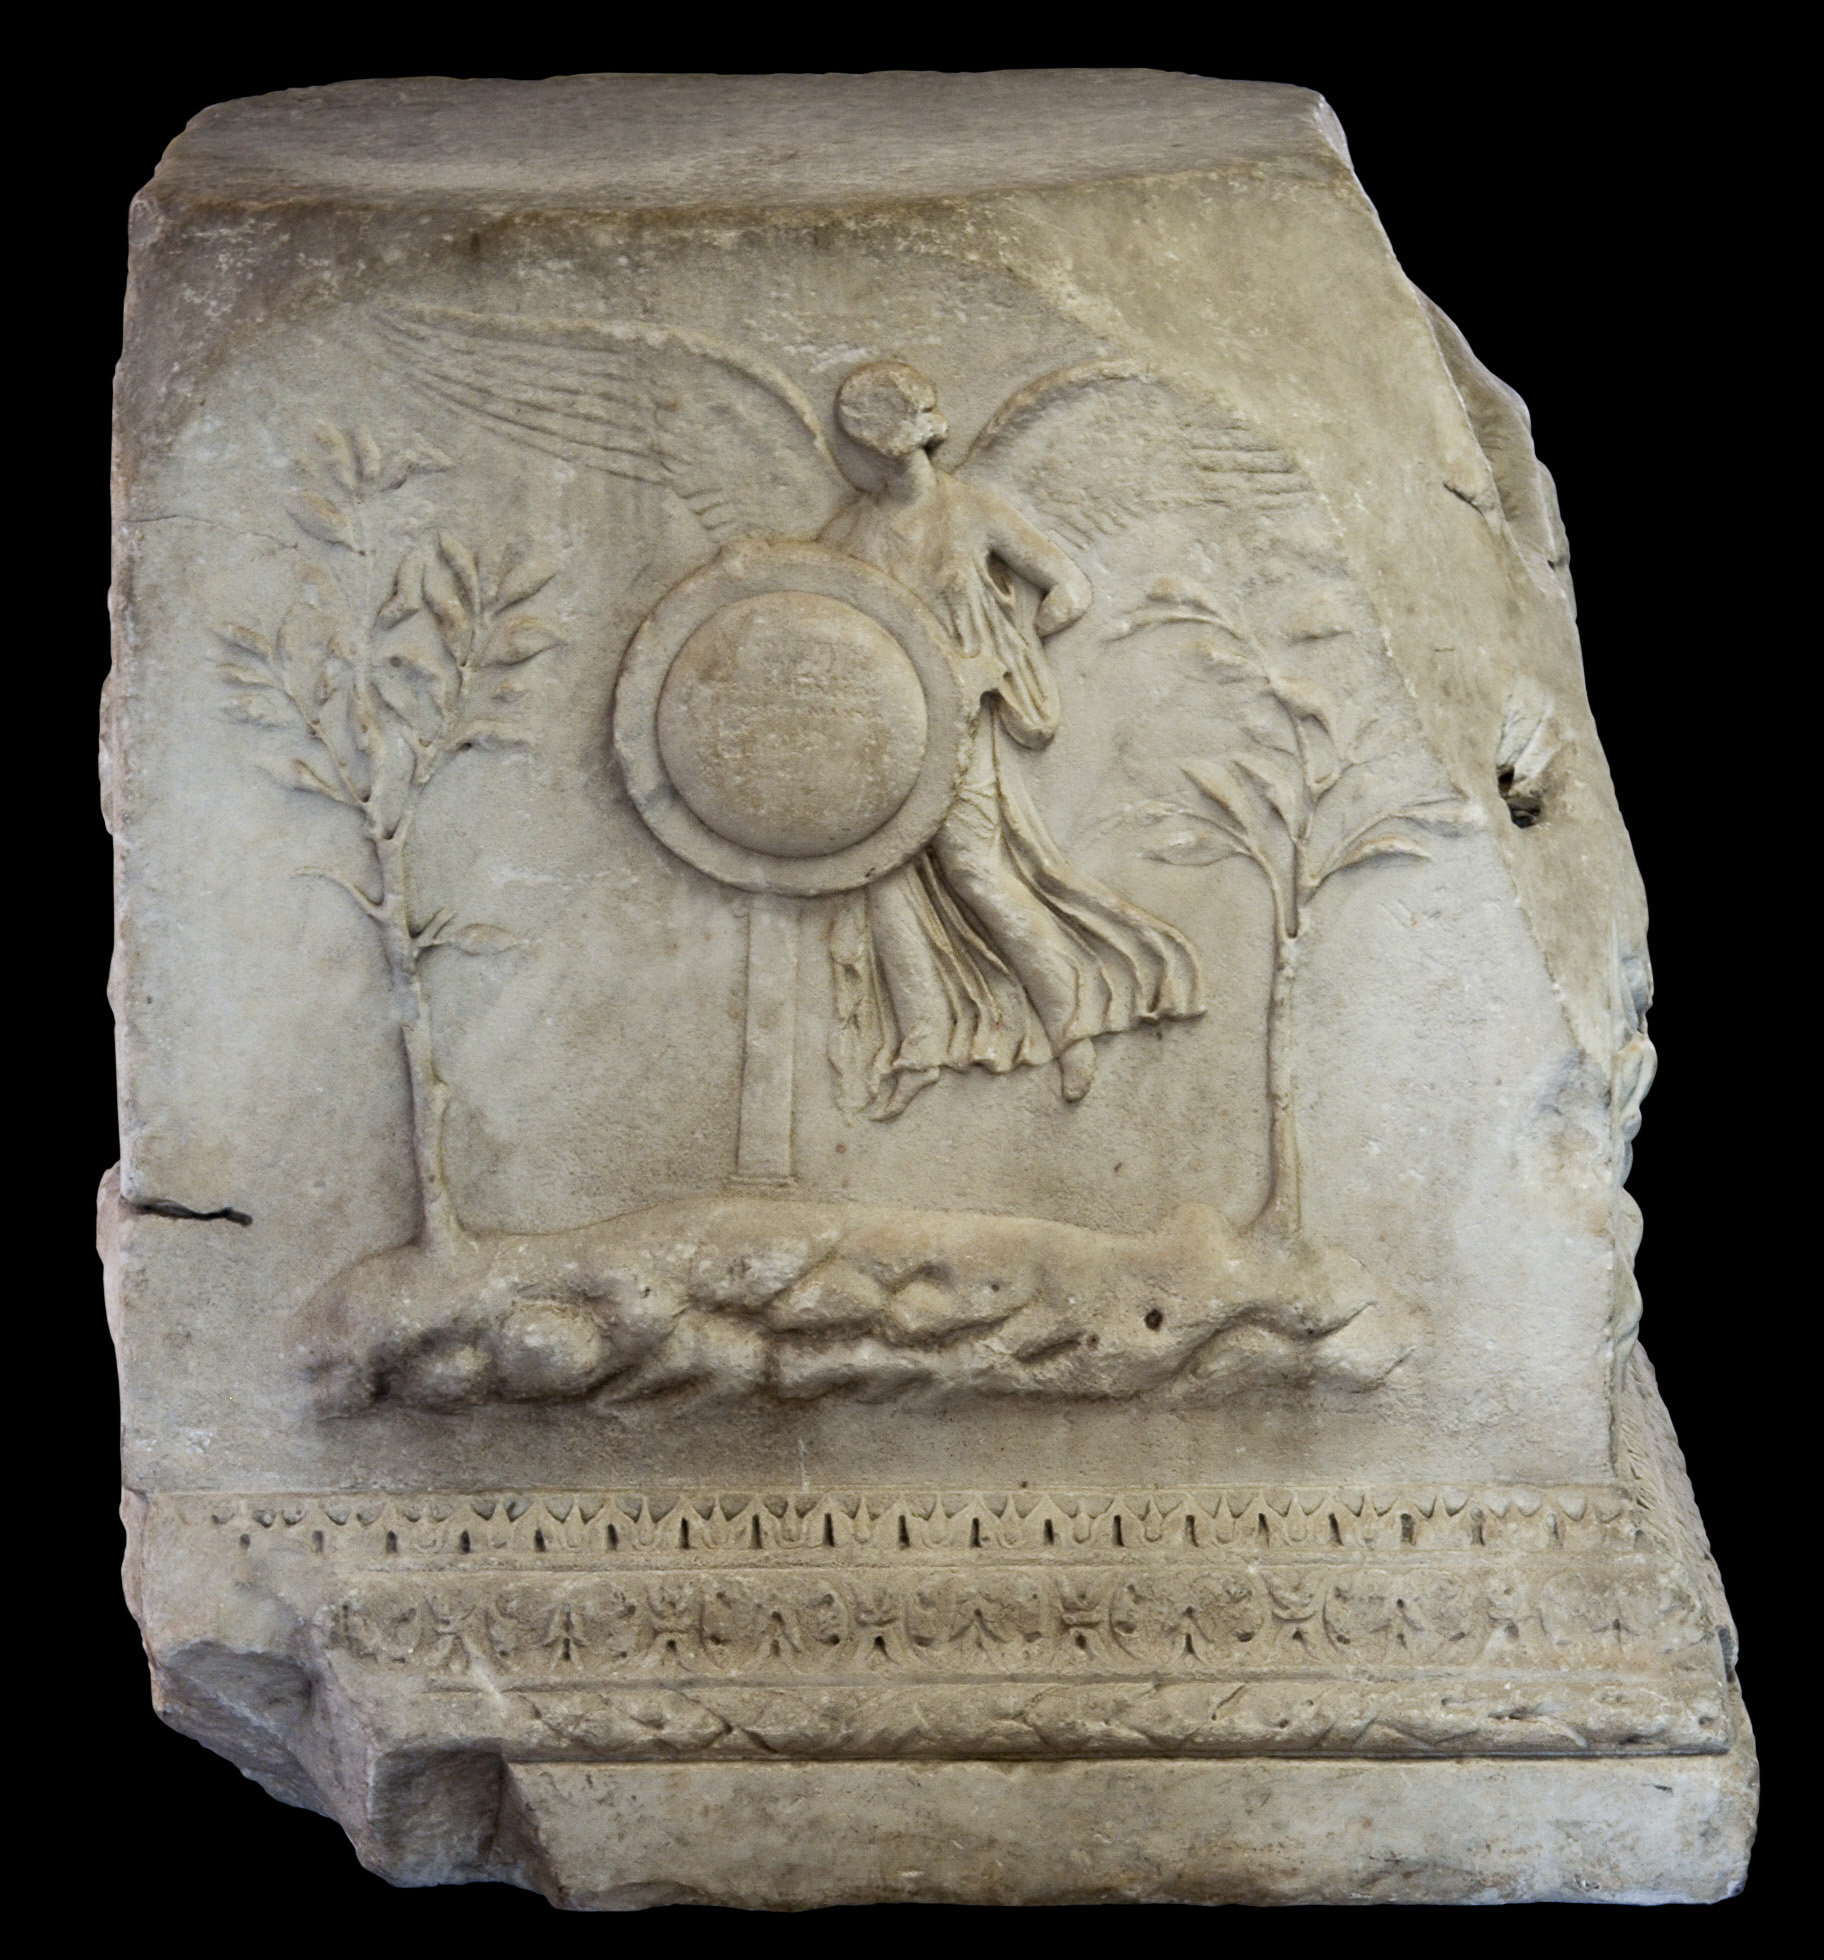 Altar of the Lares Augusti. Winged Victory with the Clupeus Virtutis. Marble. 12—2 BCE. Inv. No. 1115. Rome, Vatican Museums, Gregorian Profane Museum